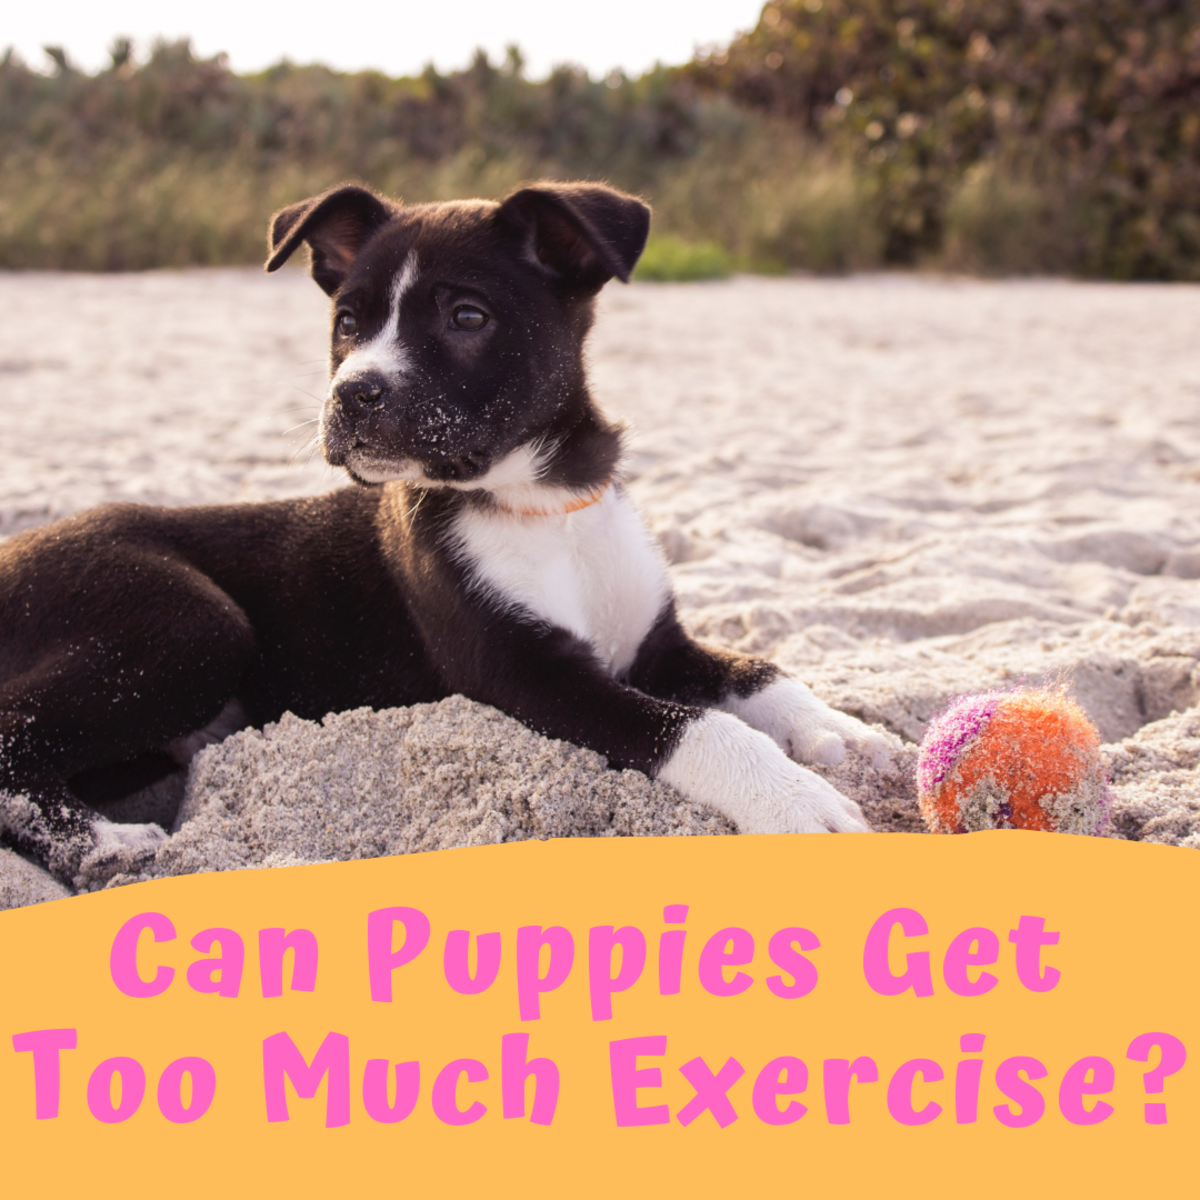 It might sound strange, but it is possible to overexercise your puppy!